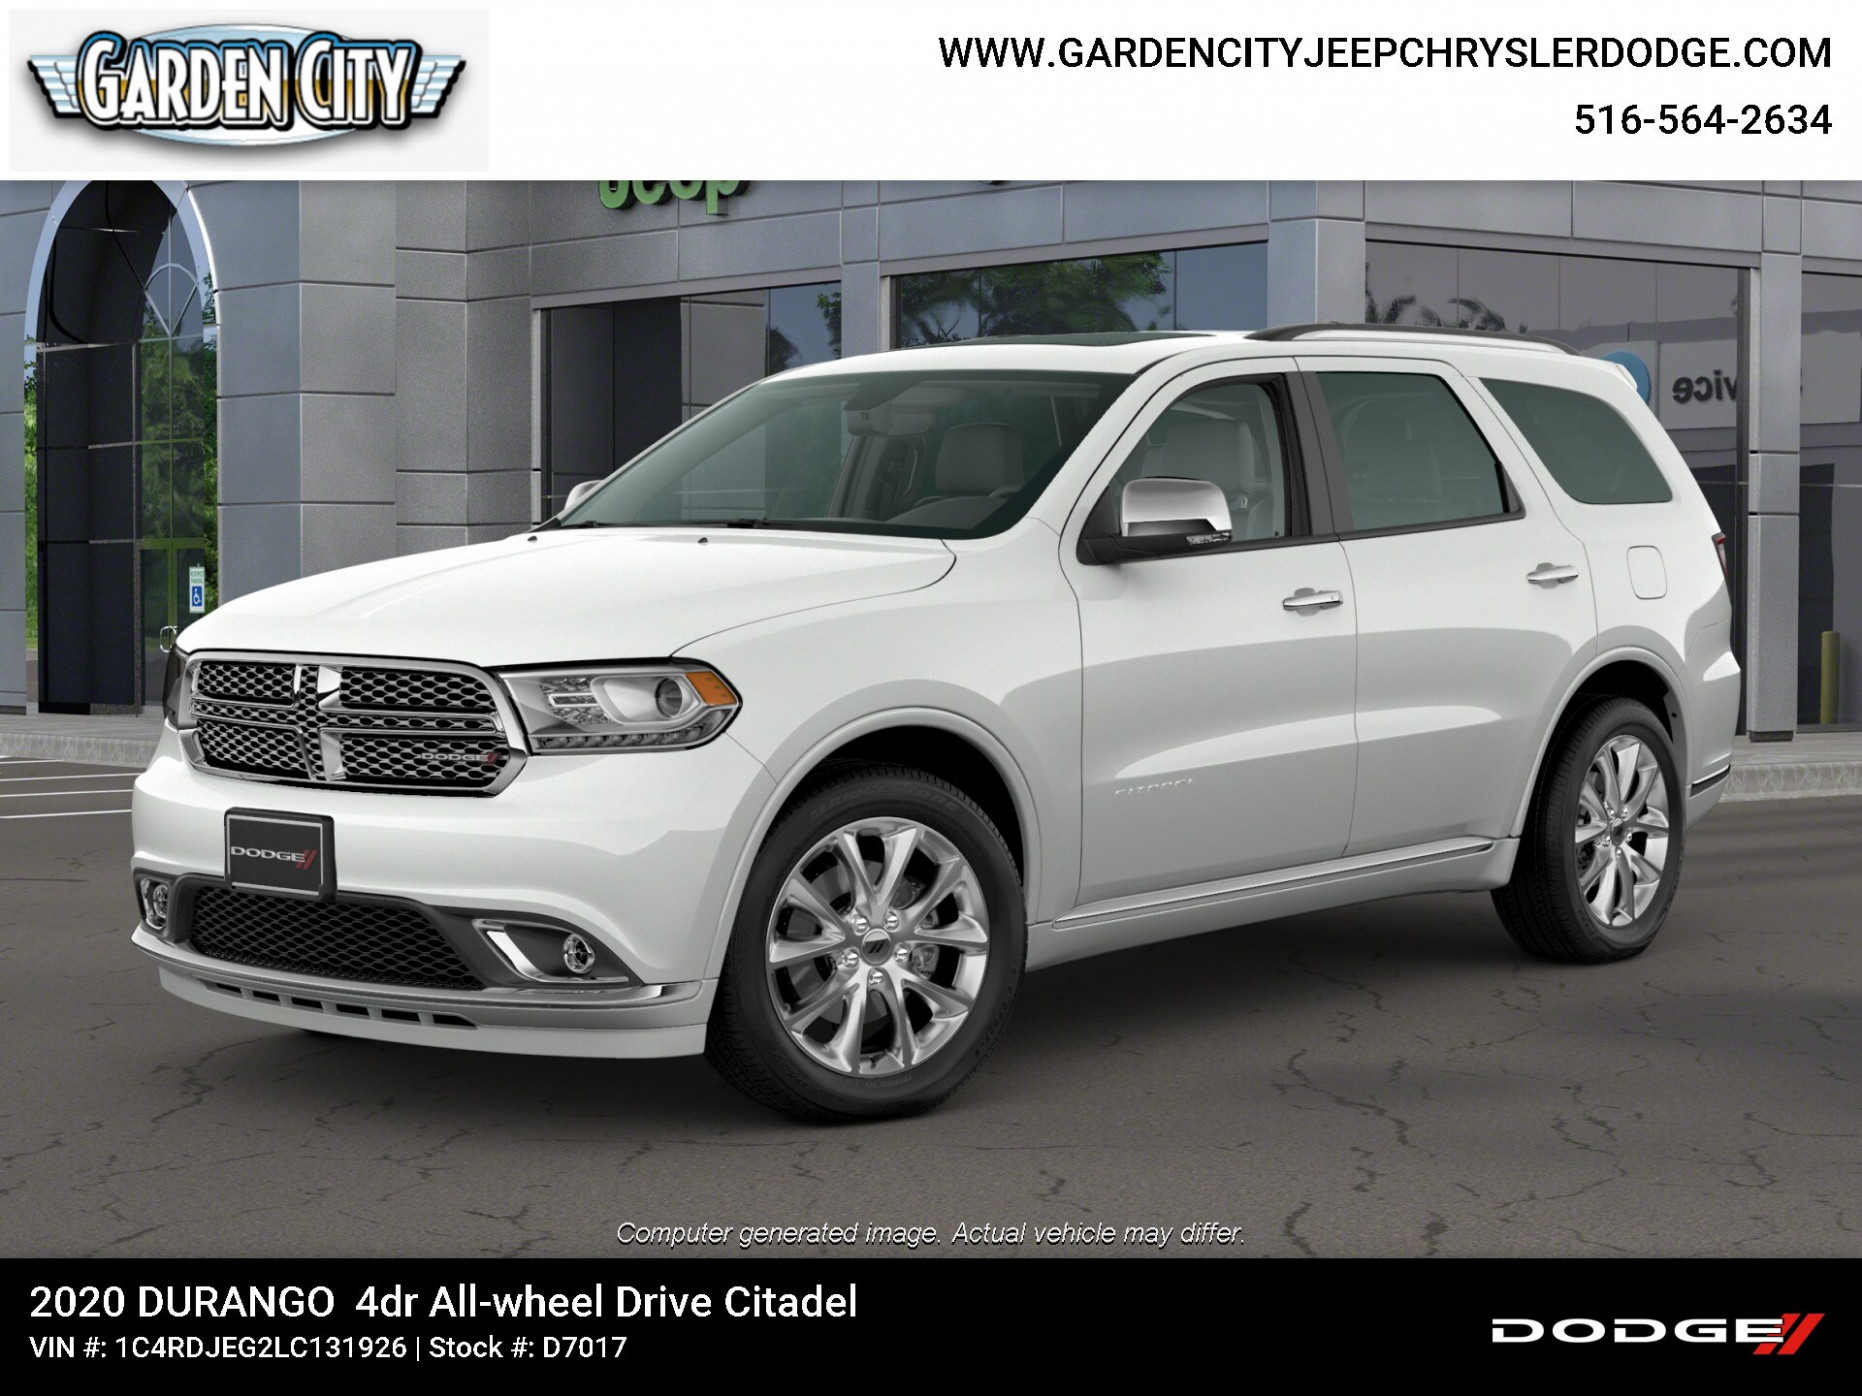 New 7 Dodge Durango CITADEL AWD For Sale in Hempstead ..